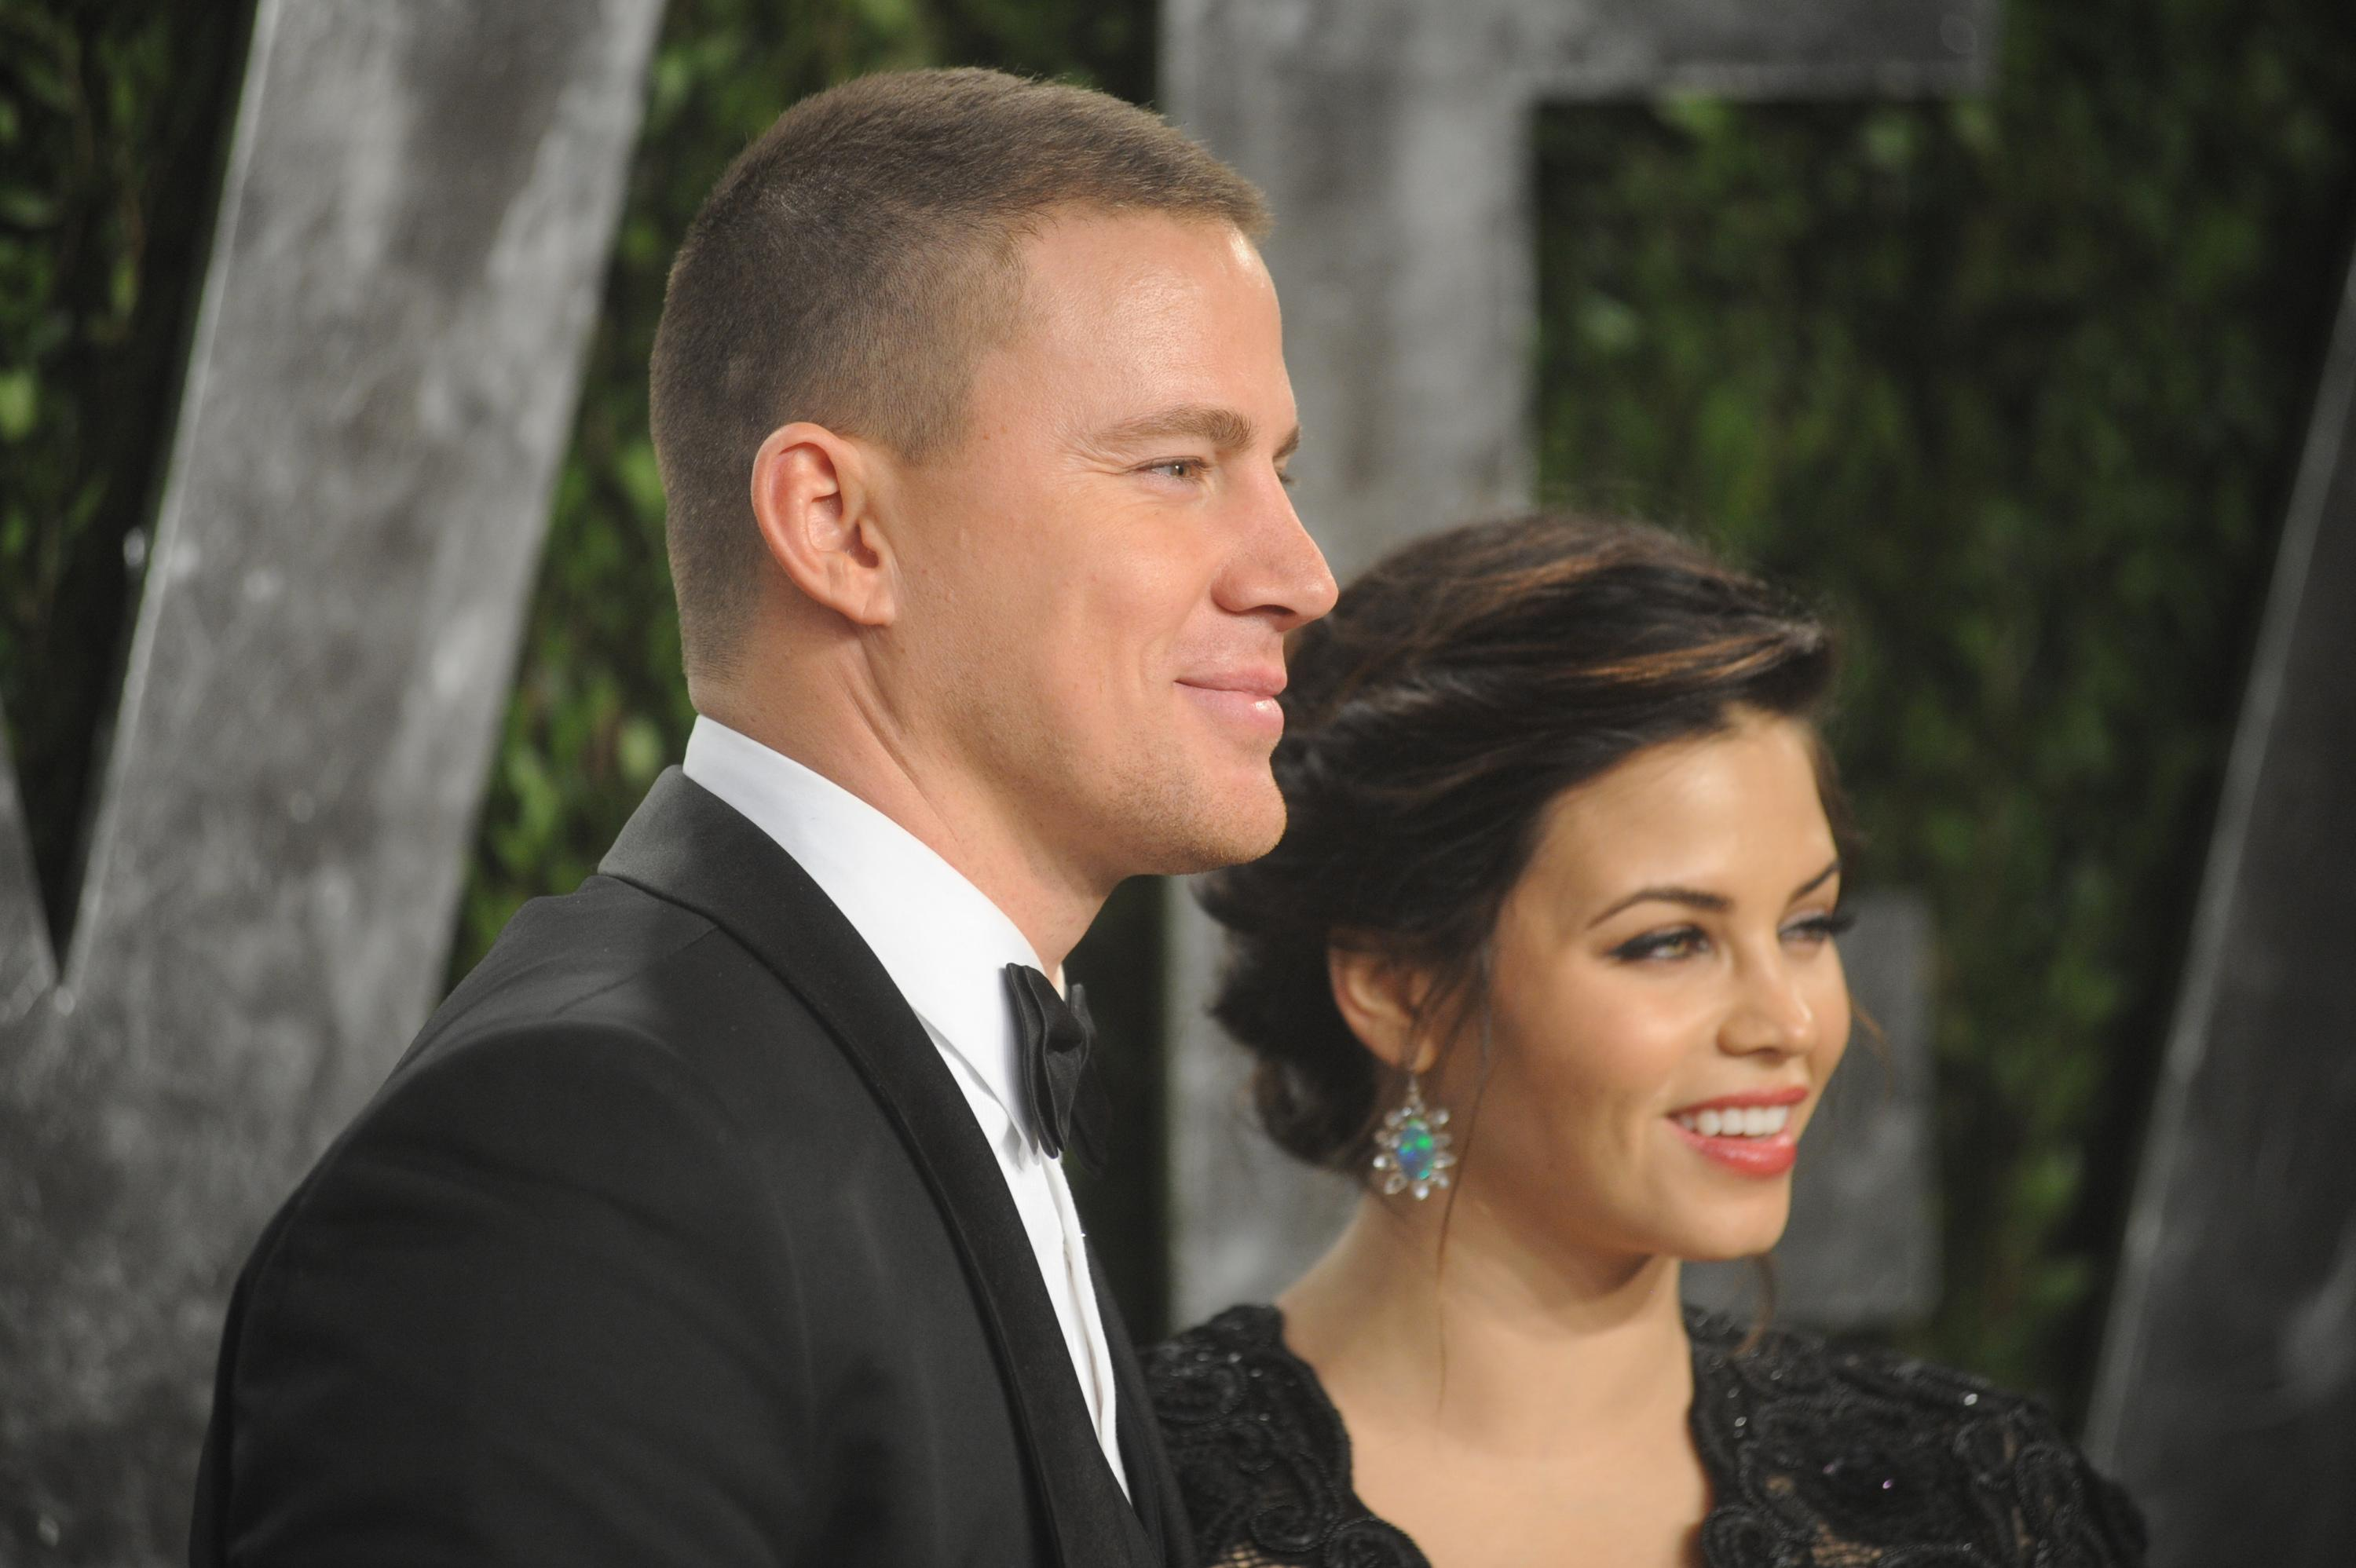 SMG_Channing Tatum_Jenna Dewan_NY1_LA_Vanity Fair_Final_Adds_022413_29.JPG WEST HOLLYWOOD, CA - FEBRUARY 24: Channing Tatum_Jenna Dewan arrives at the 2013 Vanity Fair Oscar Party at Sunset Tower on February 24, 2013 in West Hollywood, California People: Channing Tatum_Jenna Dewan Transmission Ref: NY1_LA Credit: Hoo-Me.com / MediaPunch/IPX